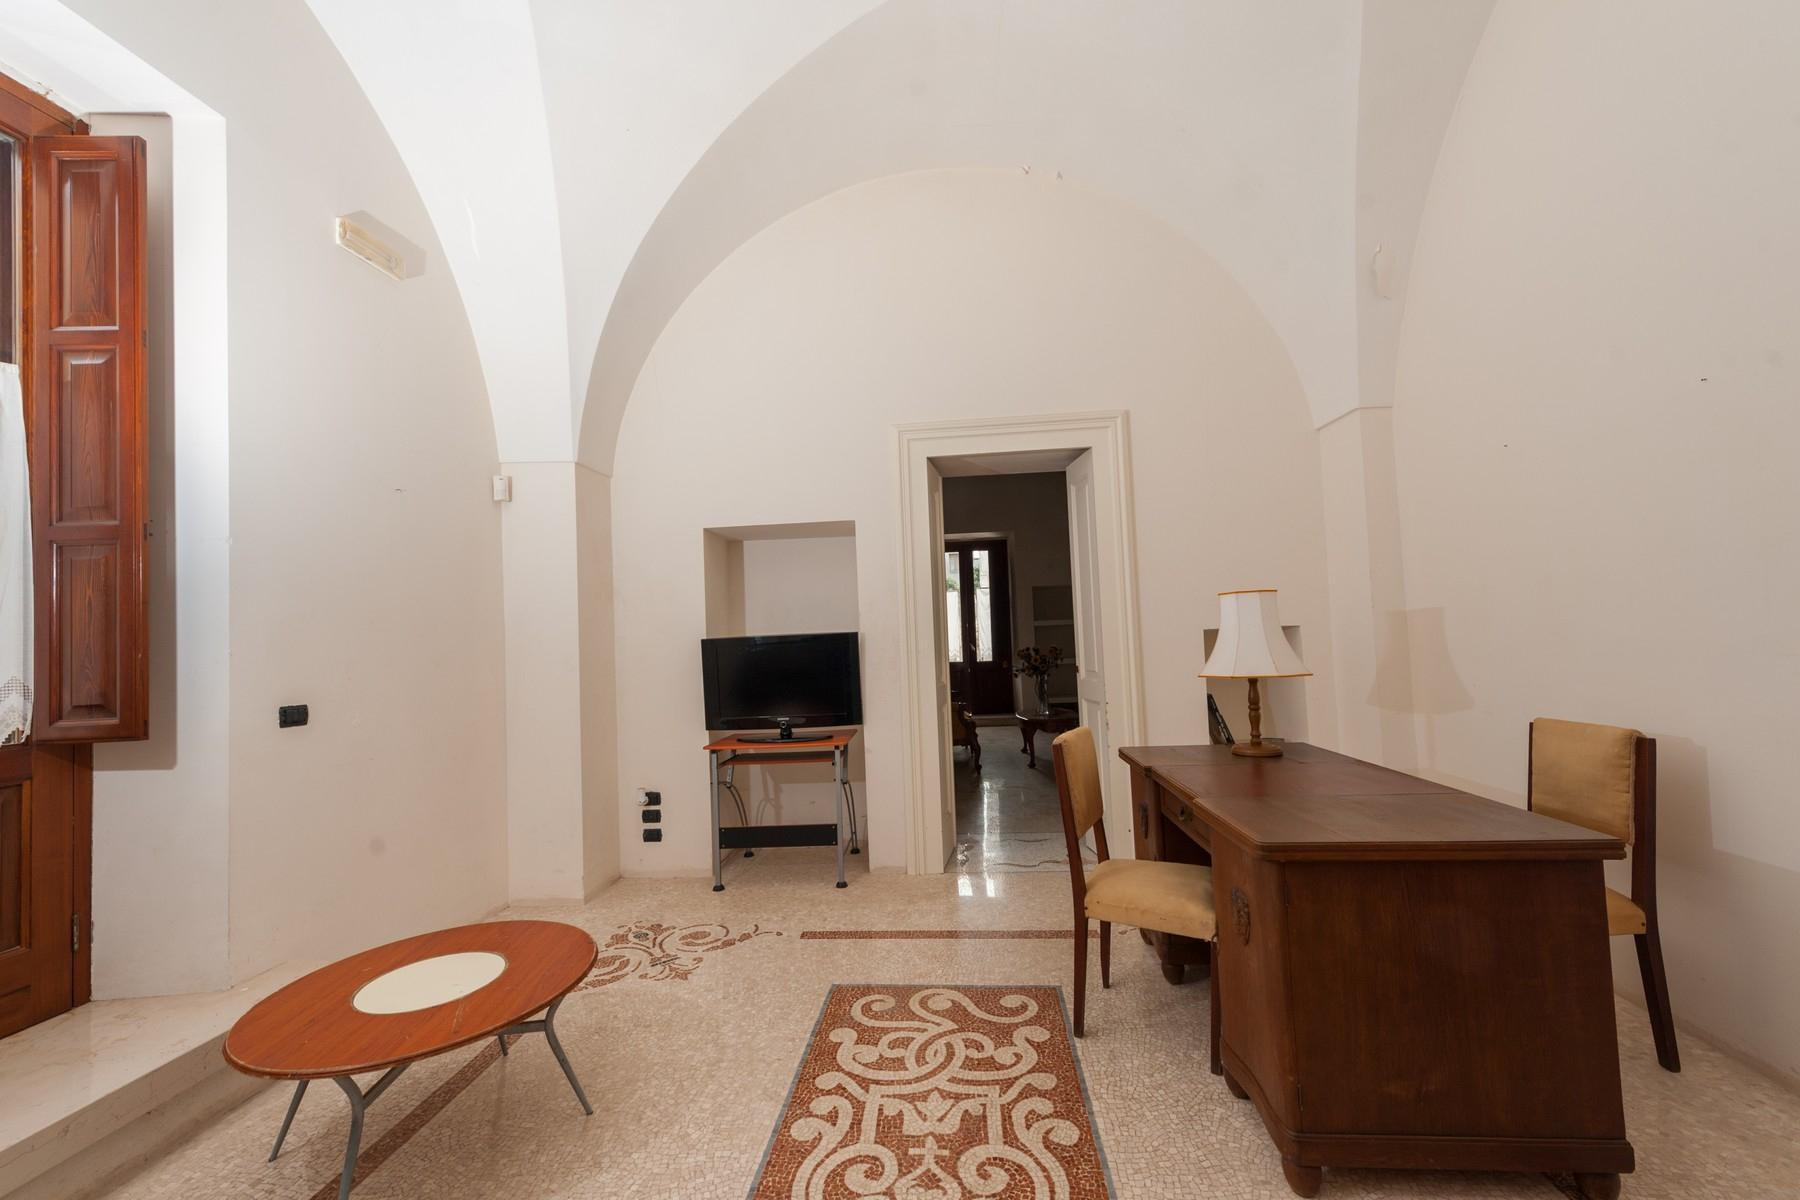 Palazzo Micali, a little gem in Salento - 29